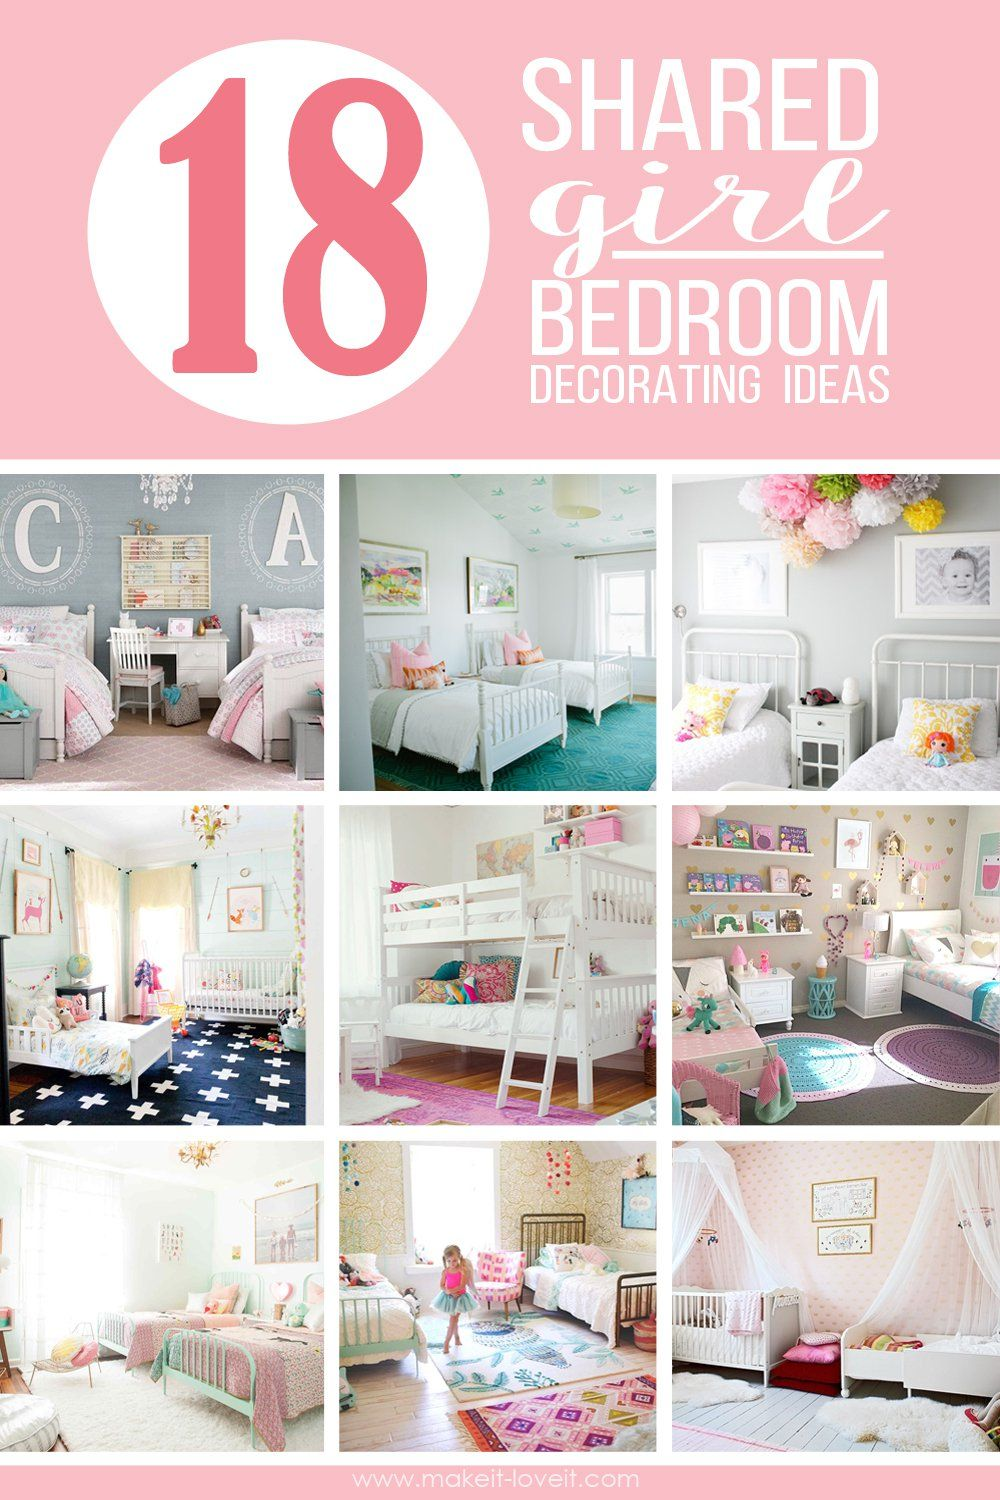 18 shared girl bedroom decorating ideas via make it and love it - Girls Bedroom Decorating Ideas